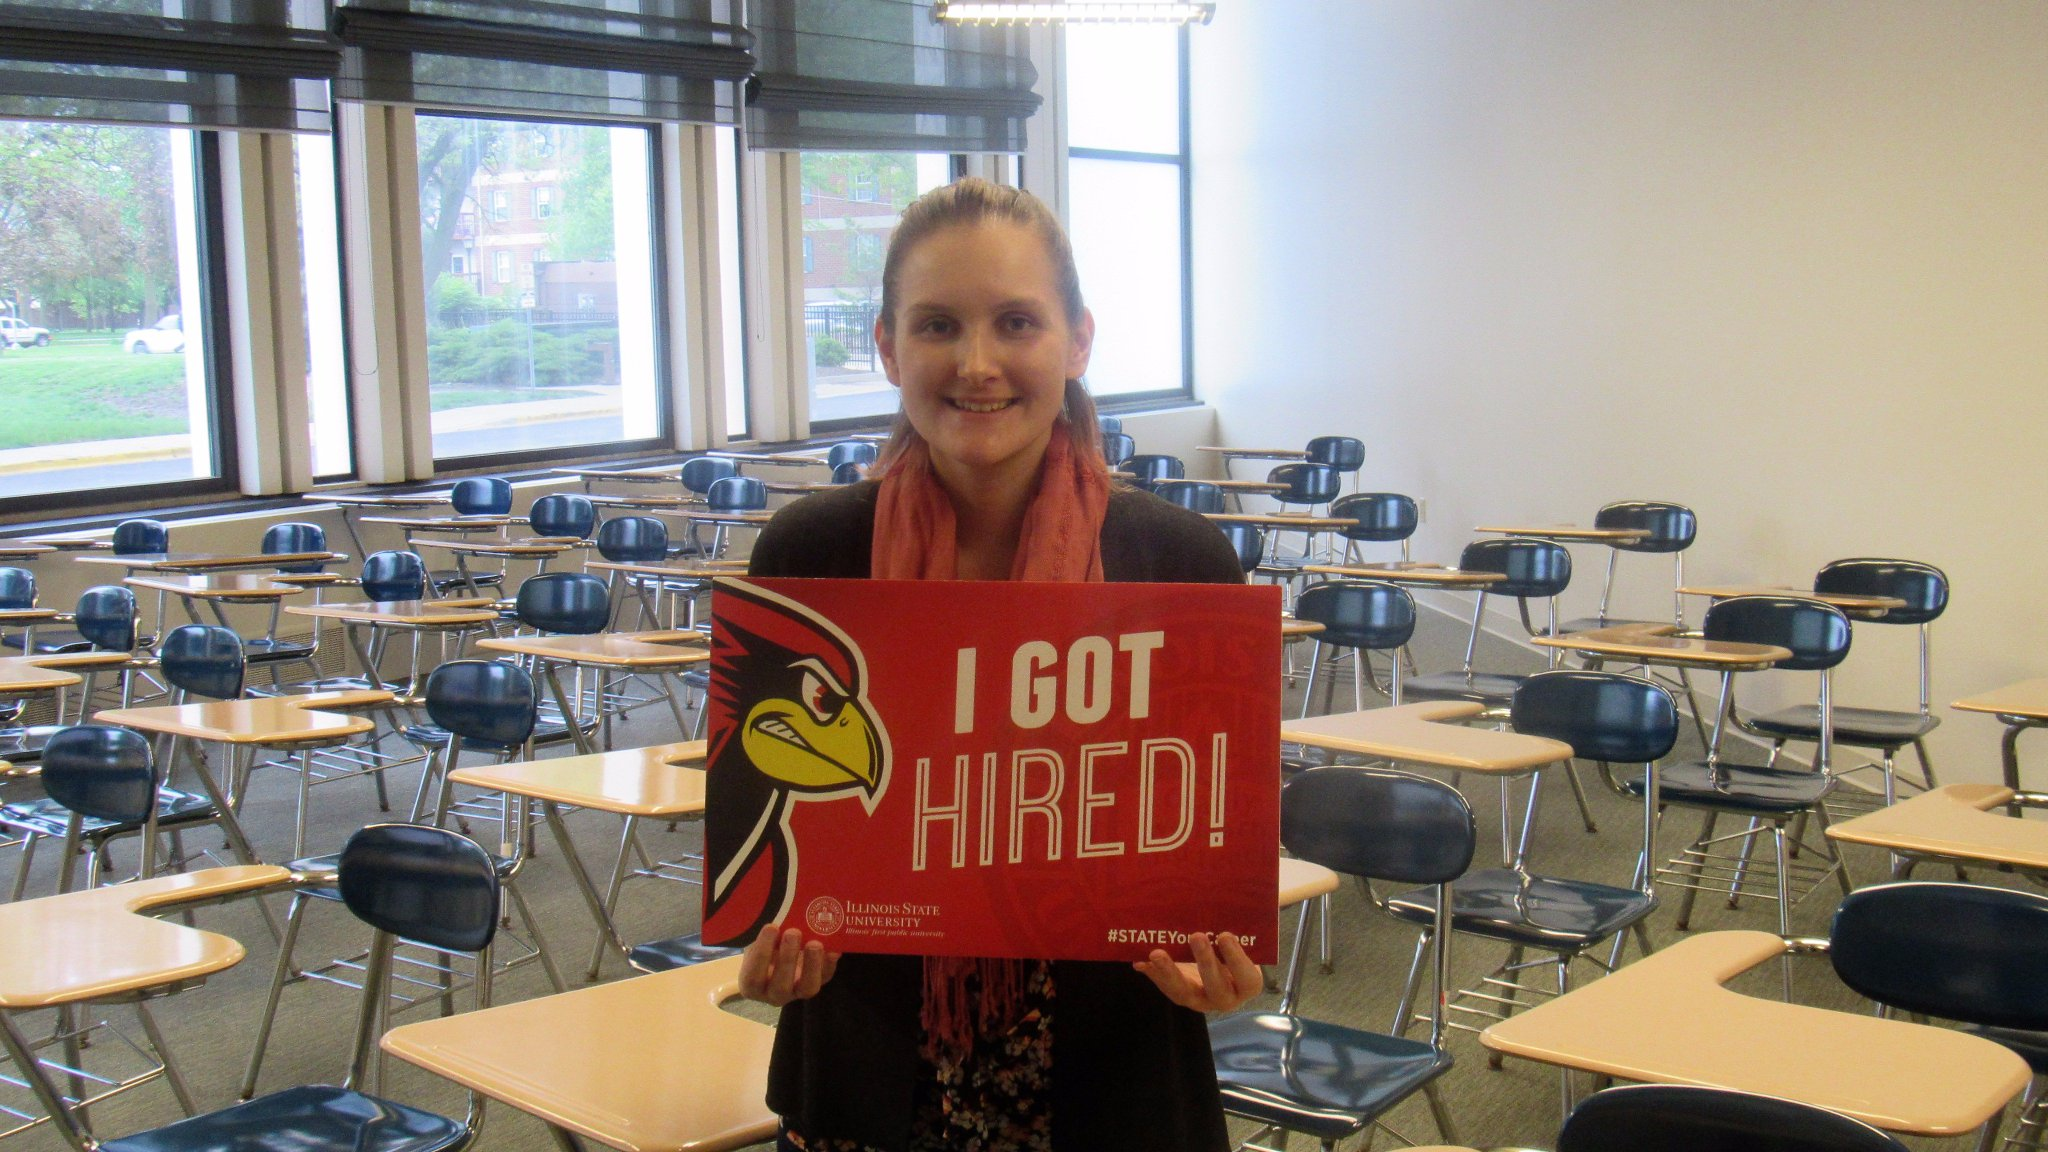 Michelle, a GA in the Visor Center will be moving across campus and joining our Advisement staff in University College! #StateYourCareer https://t.co/p8pwE4jTYt